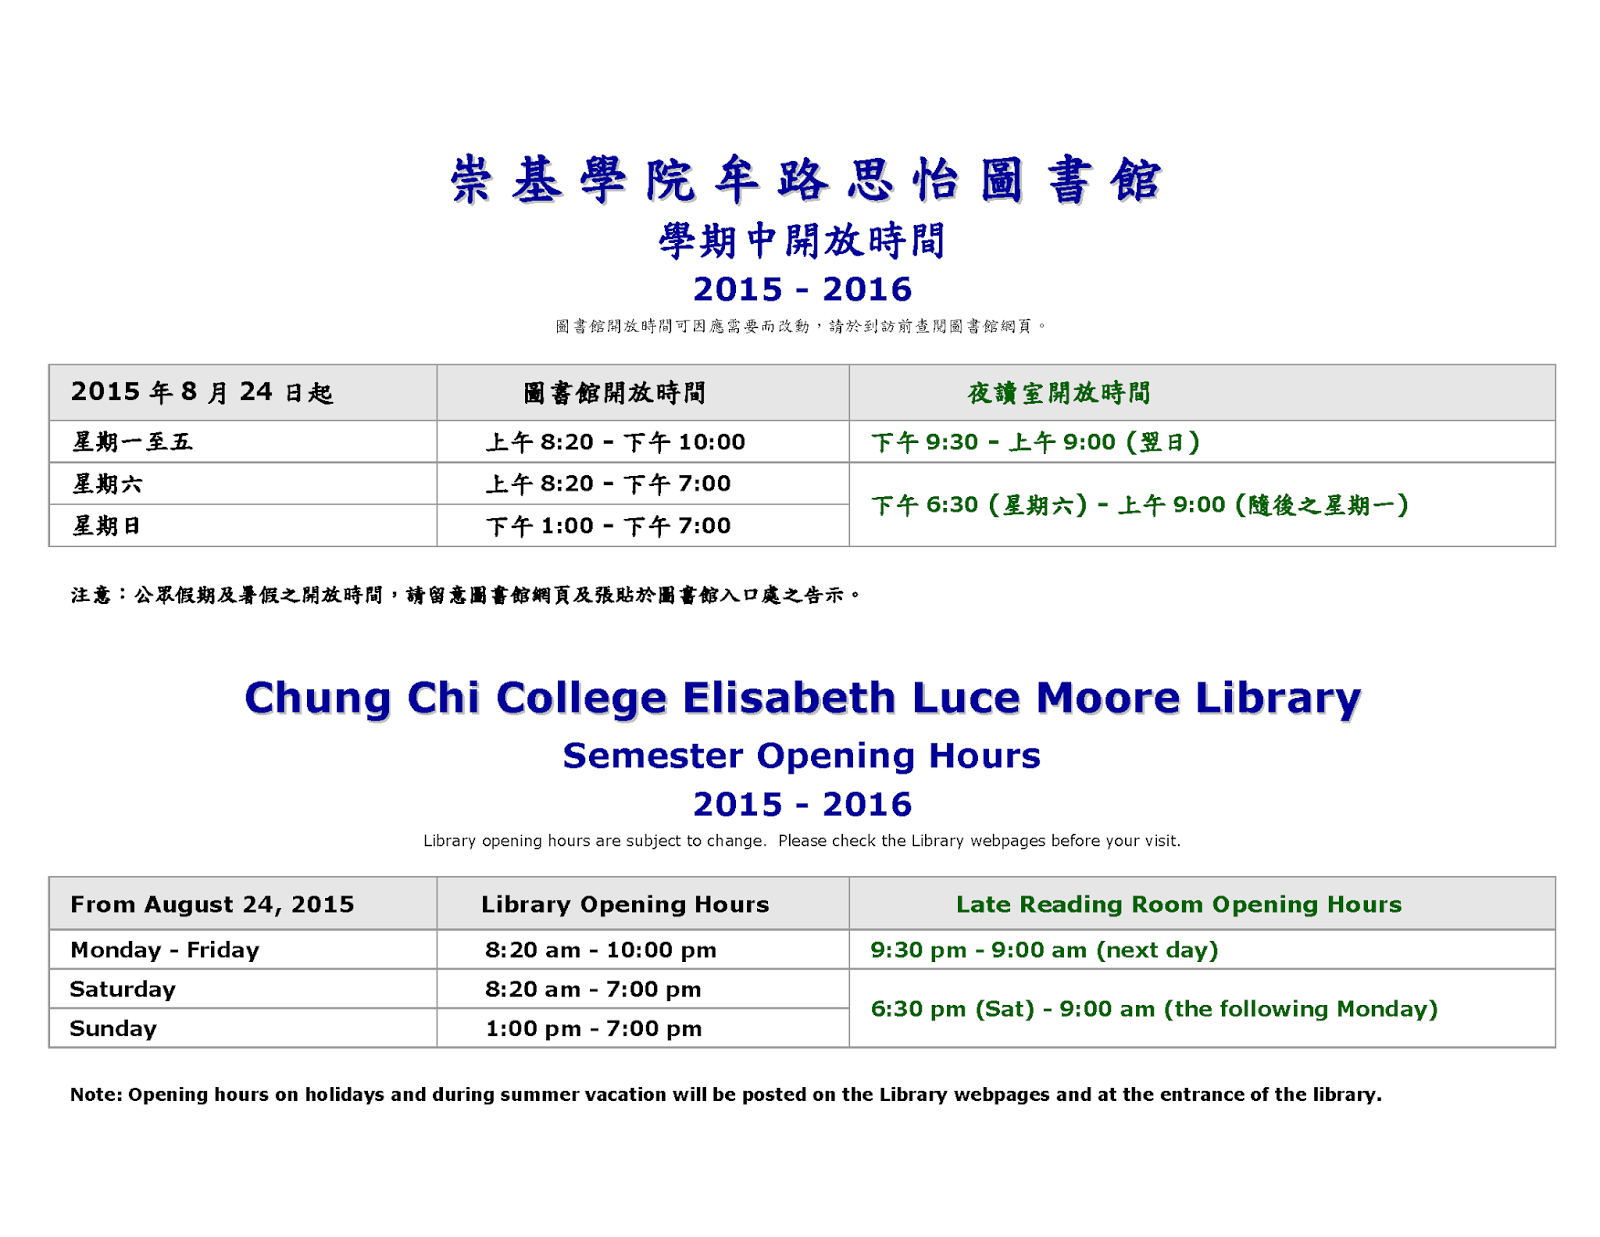 Chung Chi Library Late Reading Room